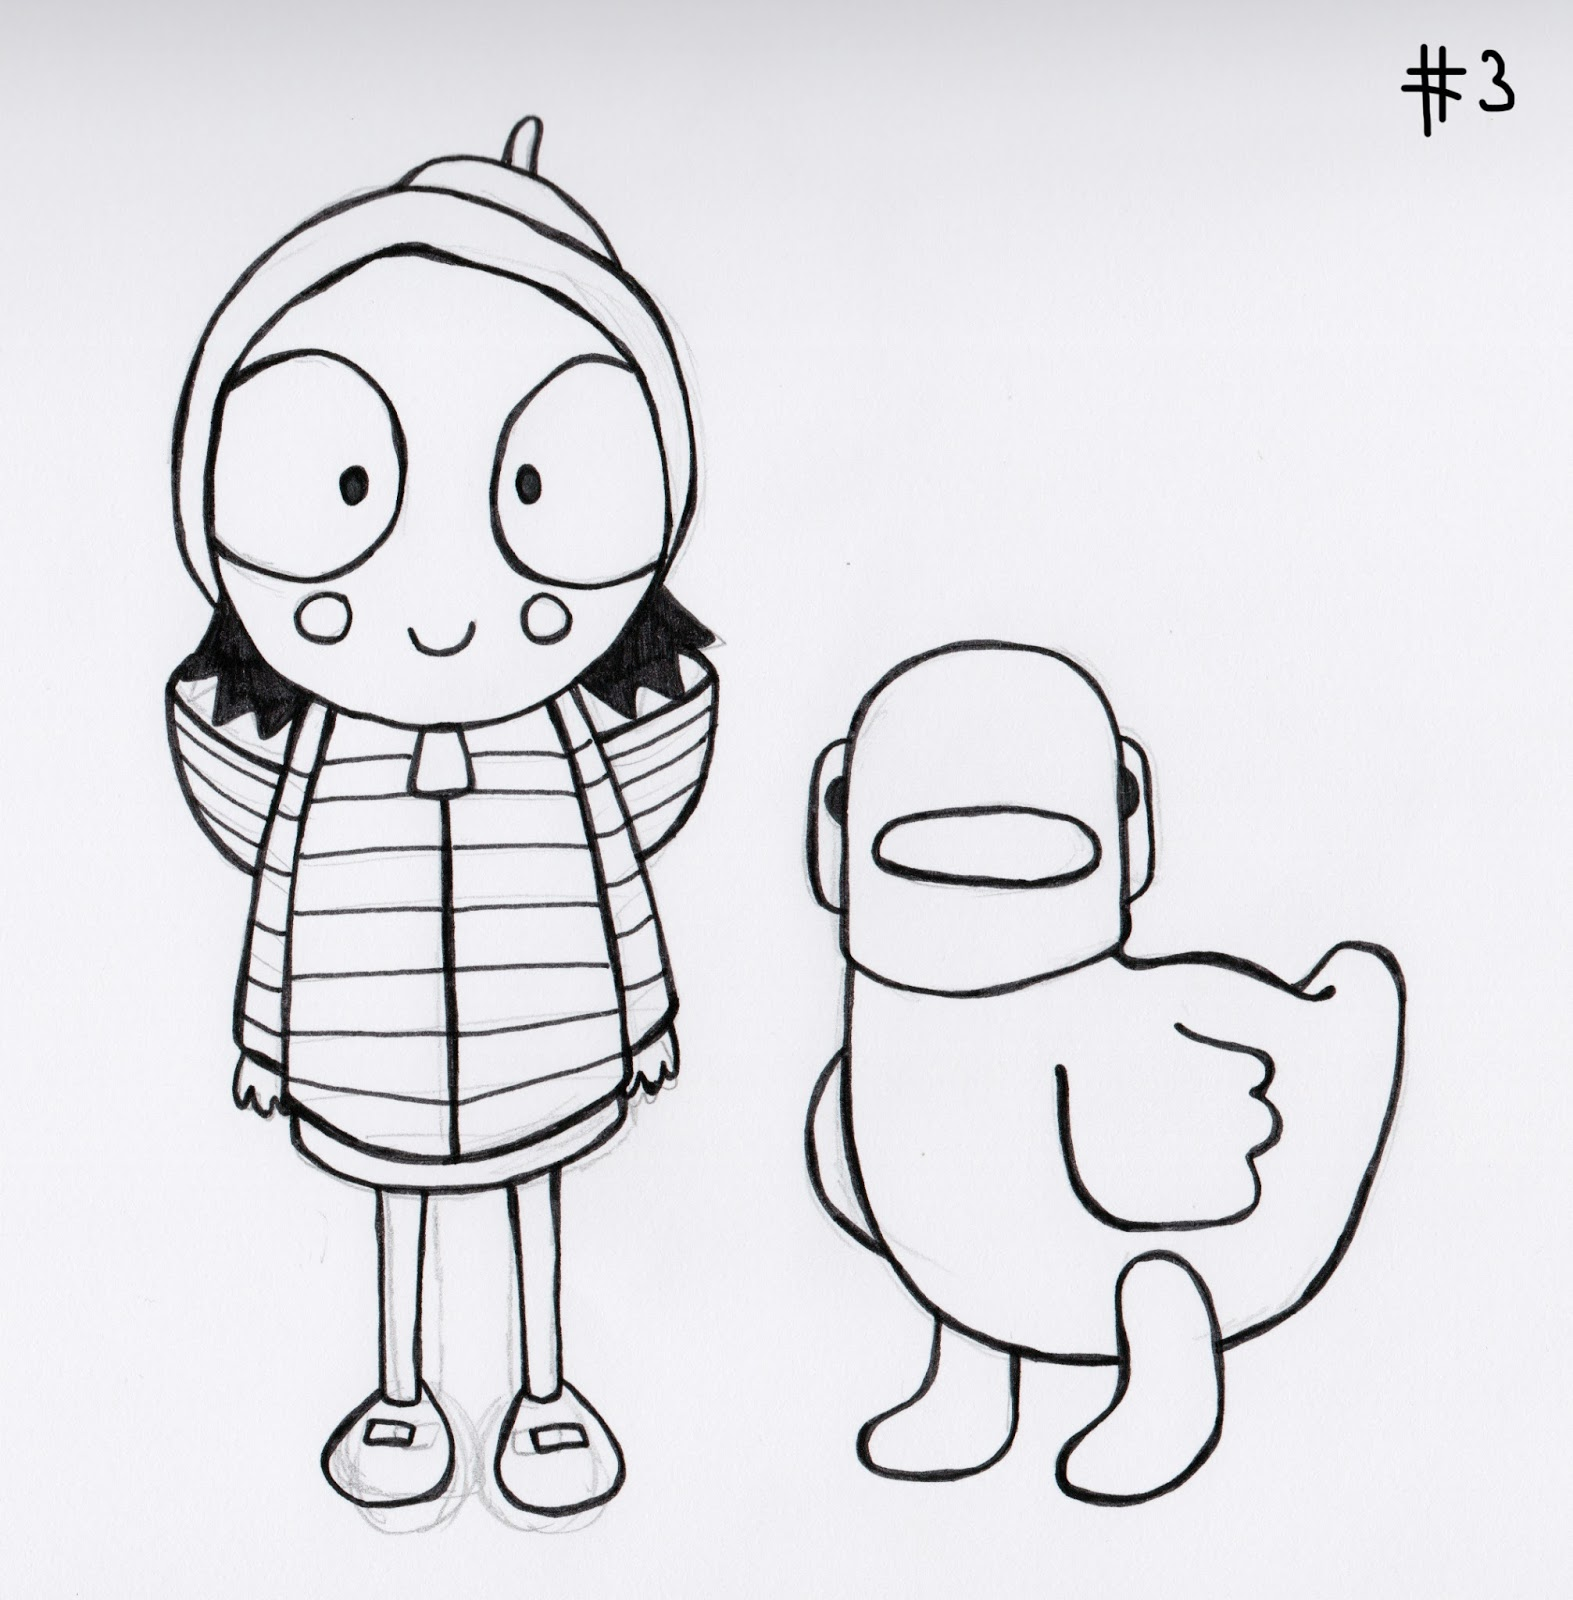 sarah and duck coloring pages - photo#12